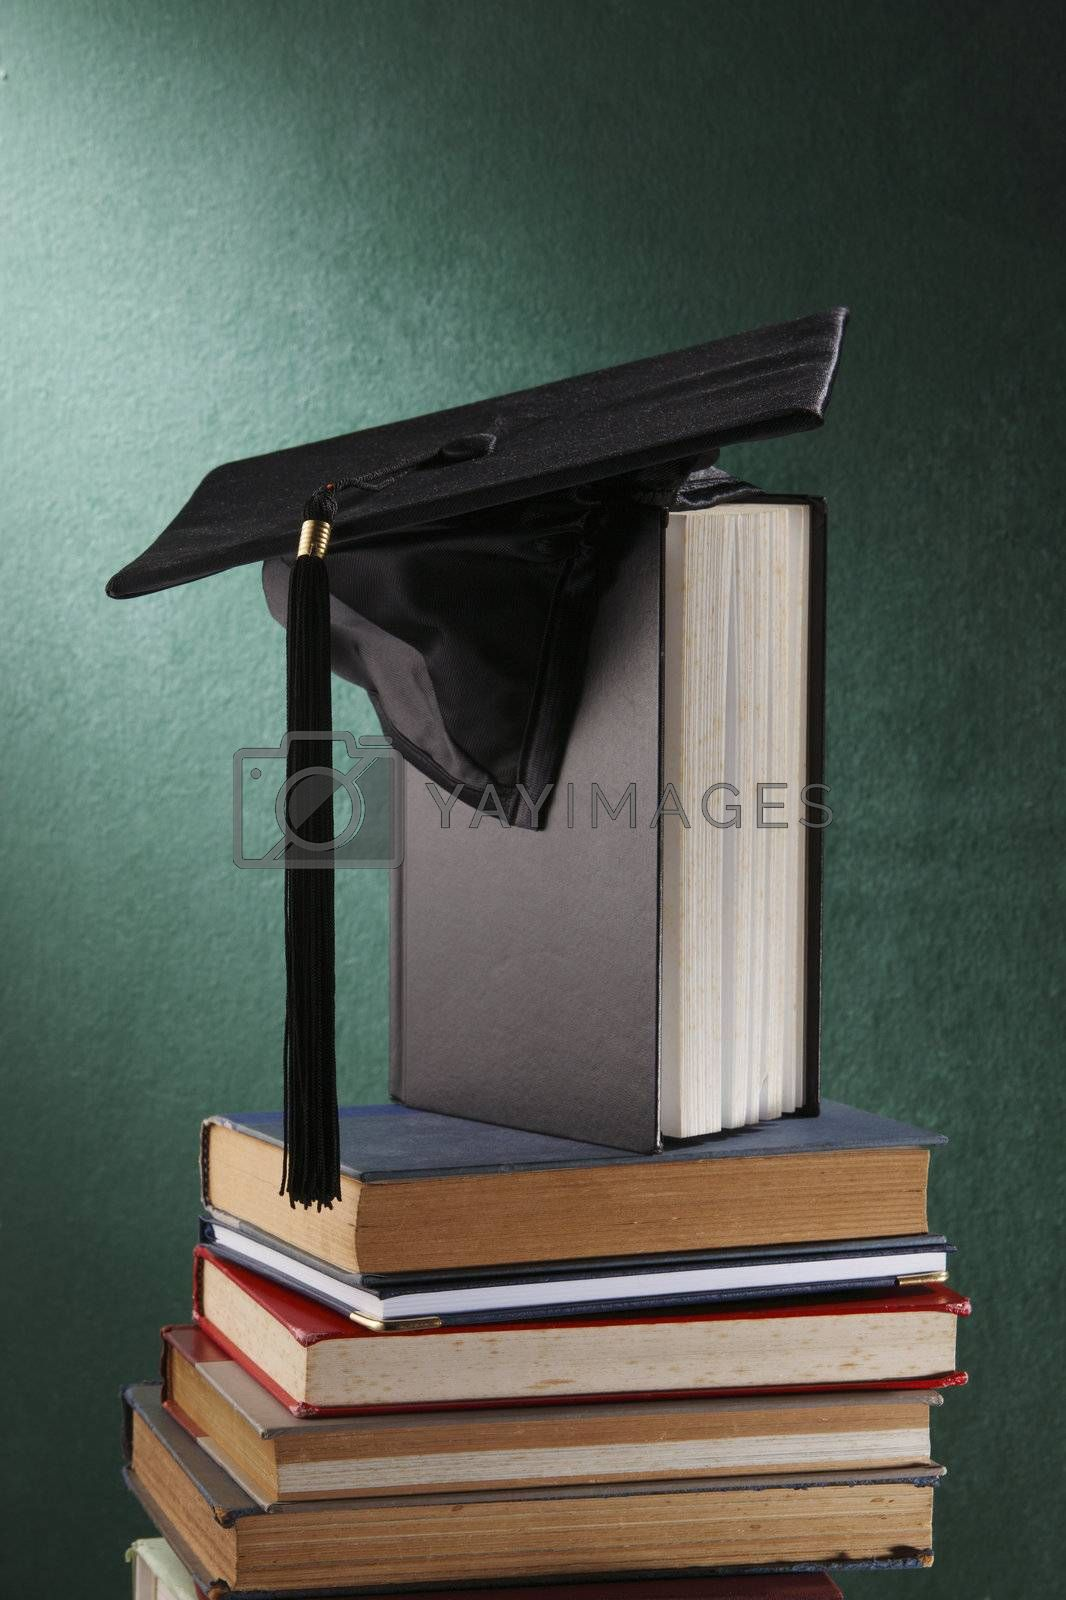 Graduation cap with book  in front of black board